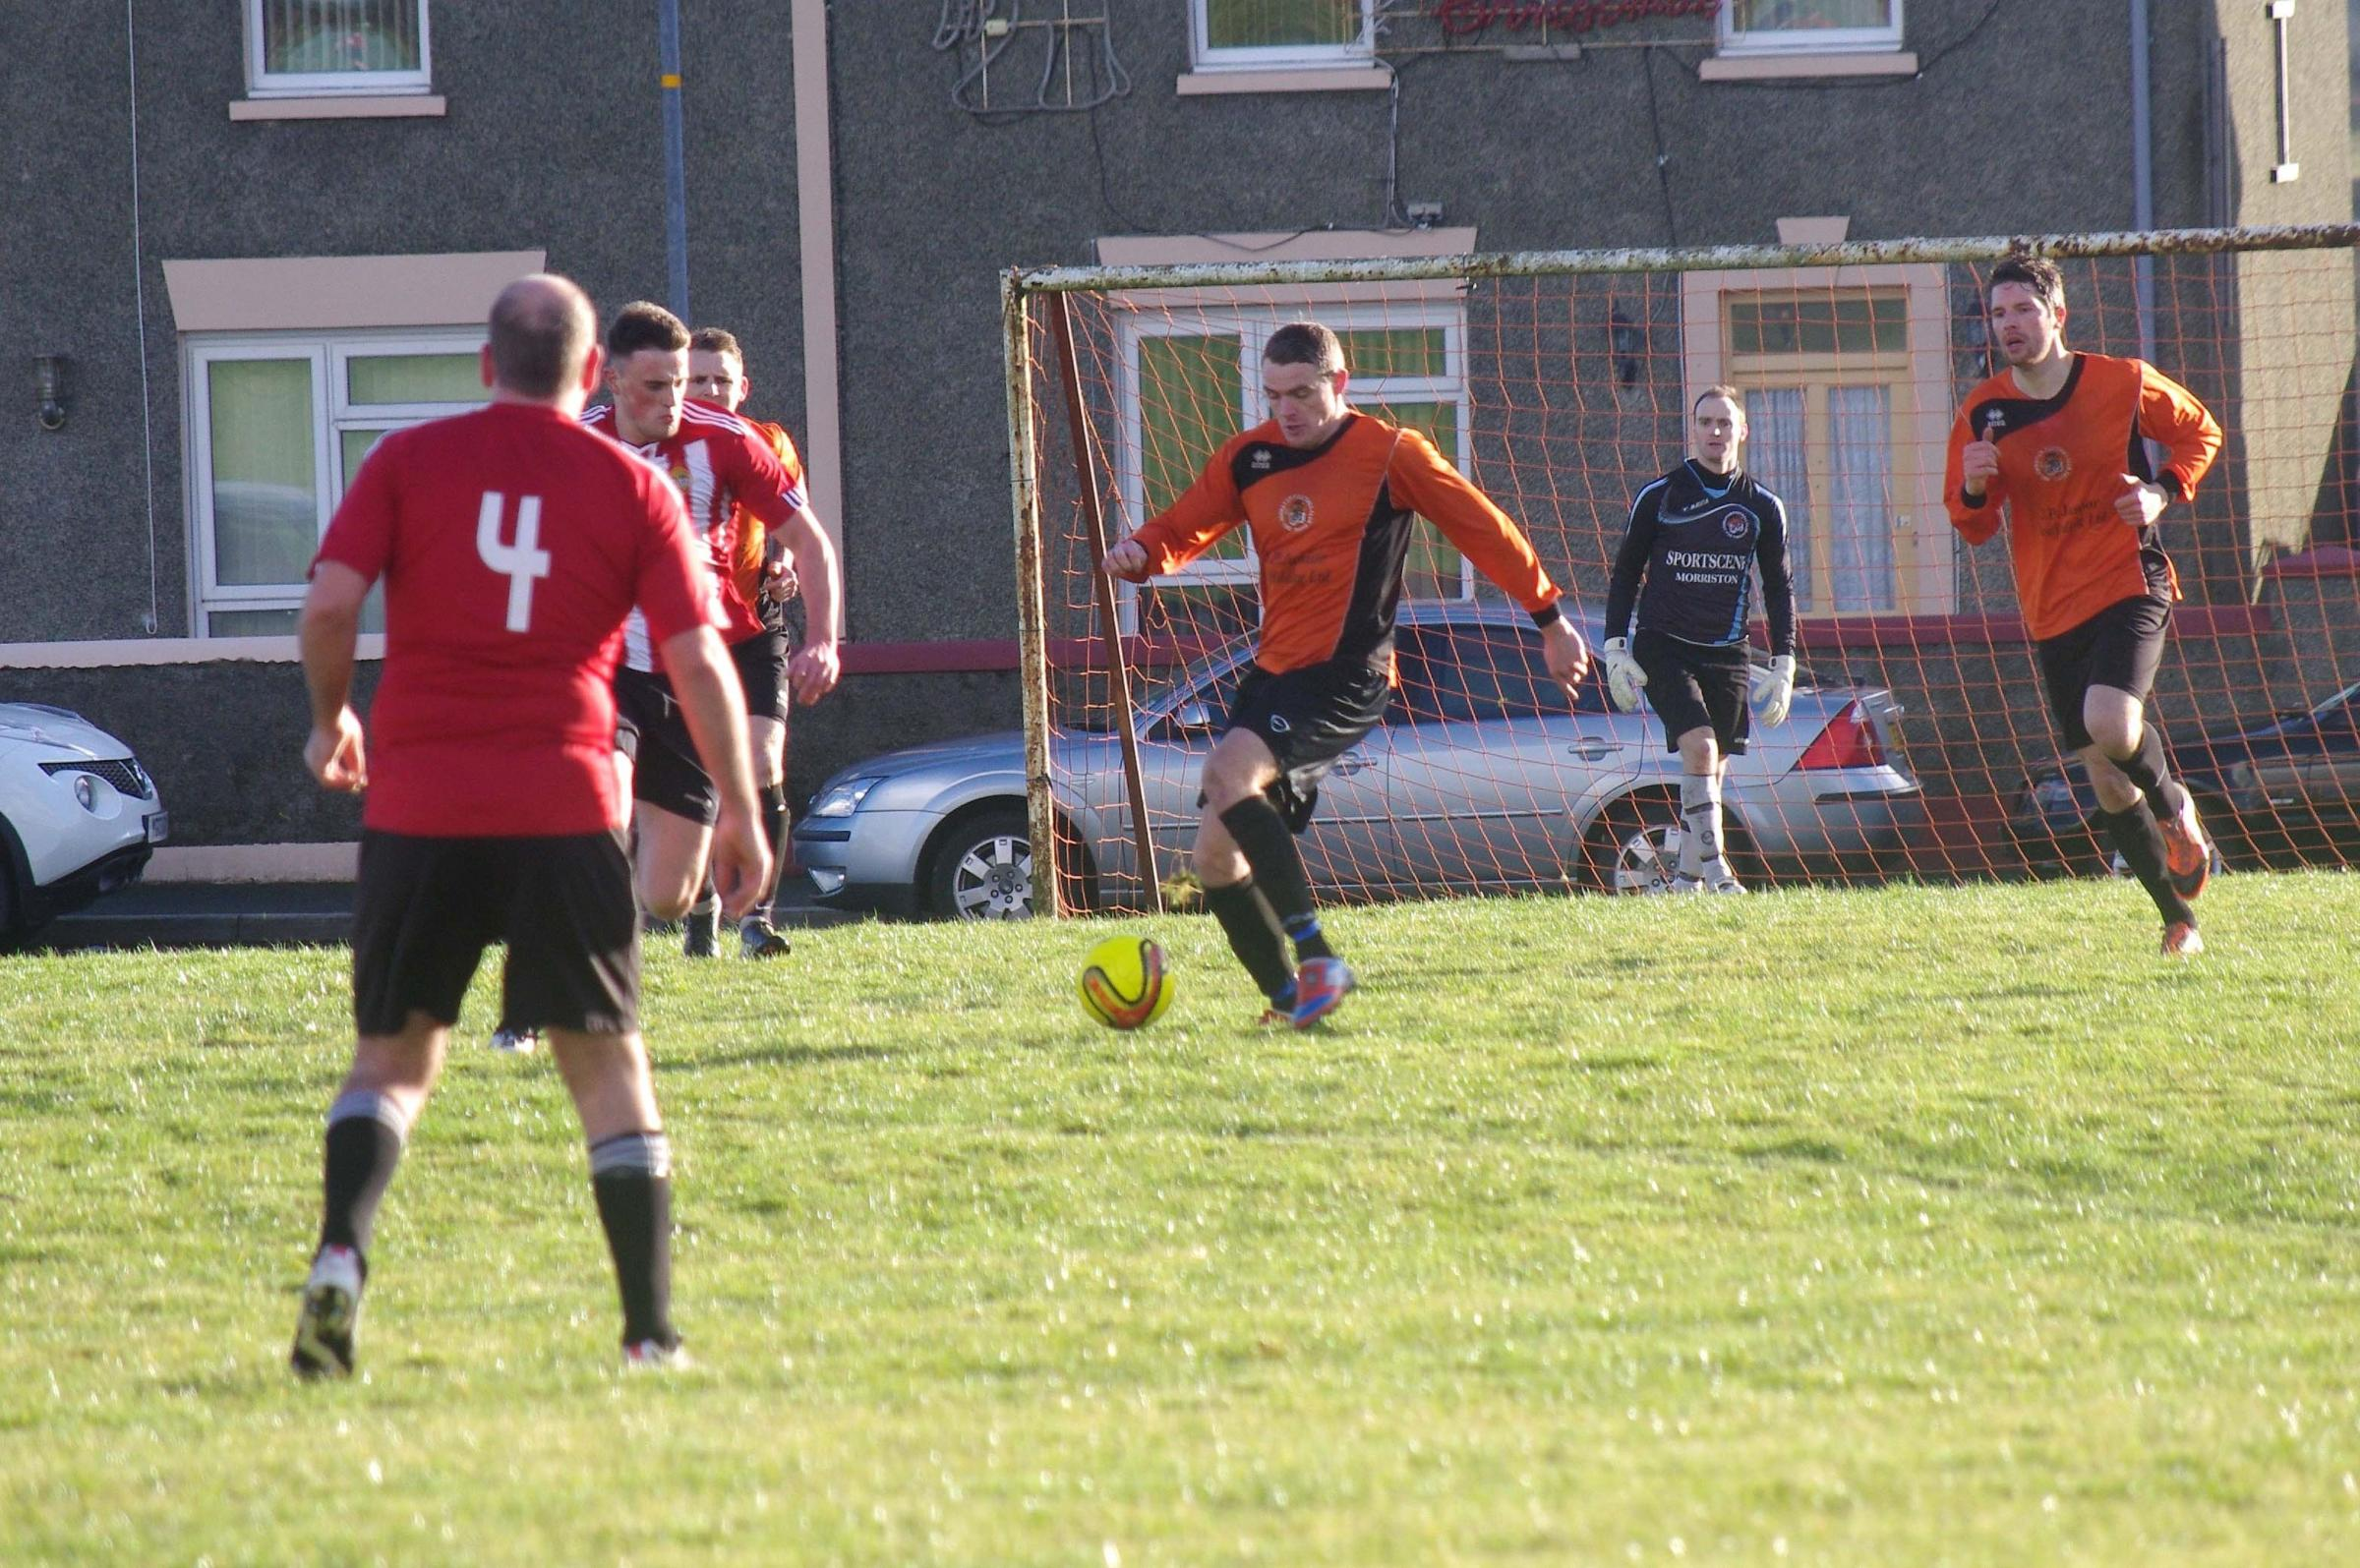 GOAL-DEN BOY: Nicky Woodrow bagged four goals for Johnston in their emphatic 9-0 win over Saundersfoot Sports. (3270020)